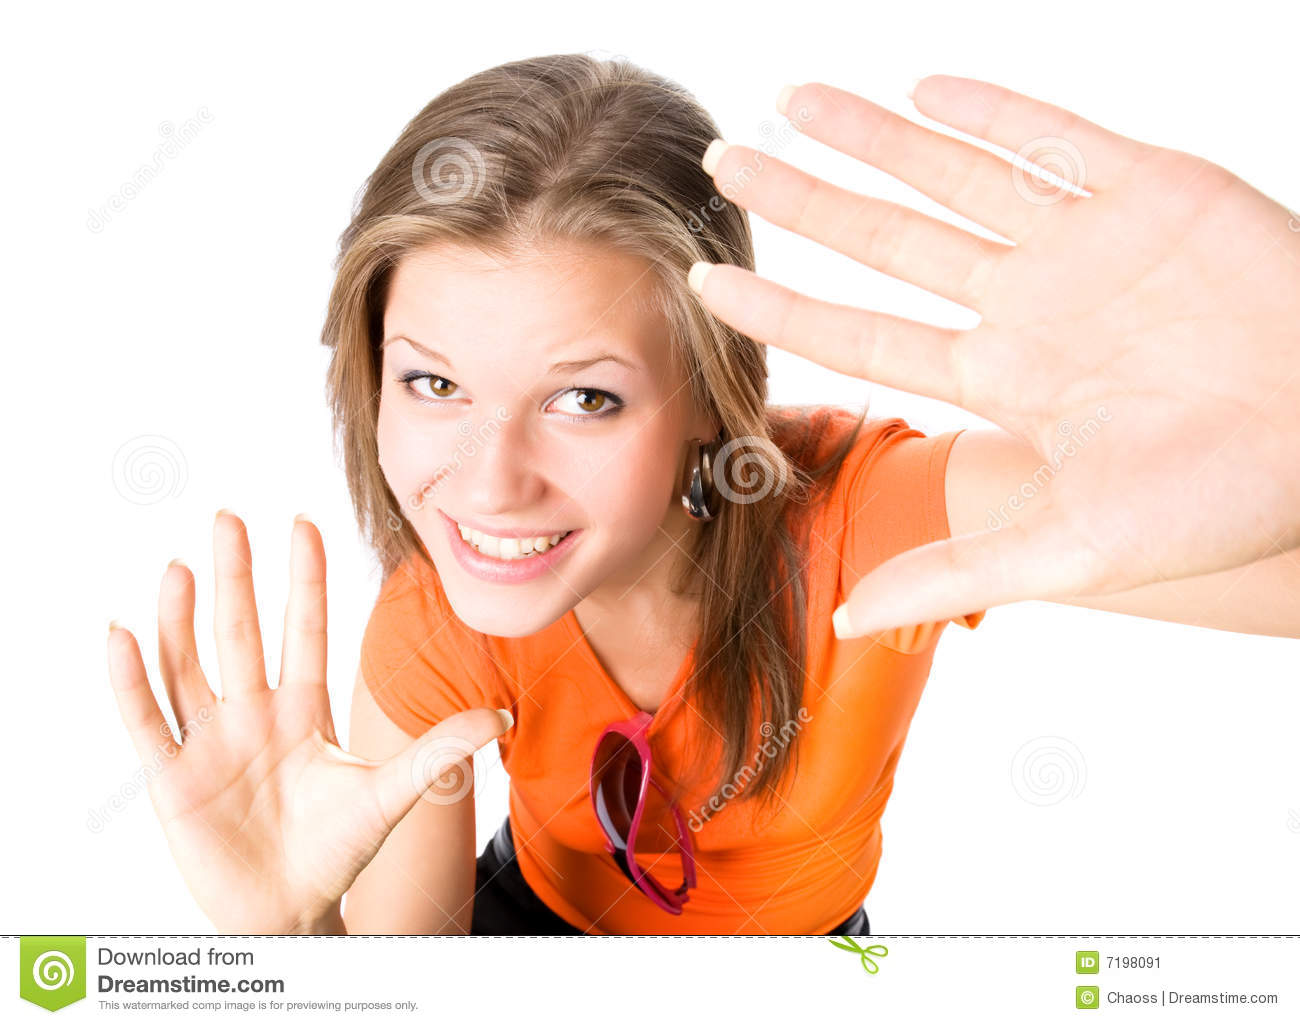 Camera hands happy stretching to woman young